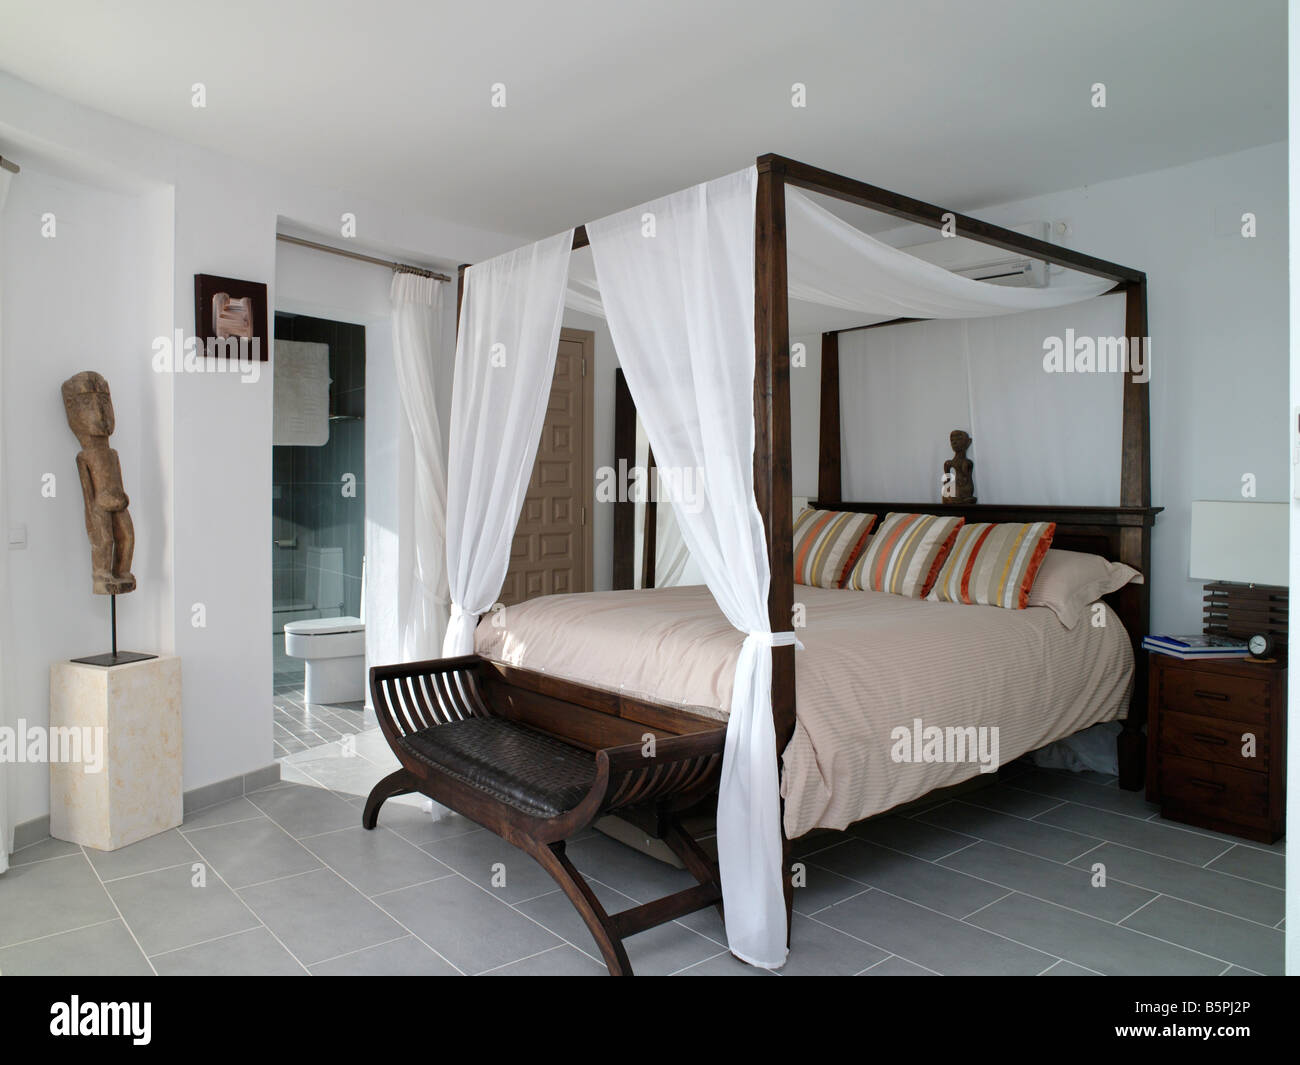 Bedroom with four poster bed in Spanish villa - Stock Image